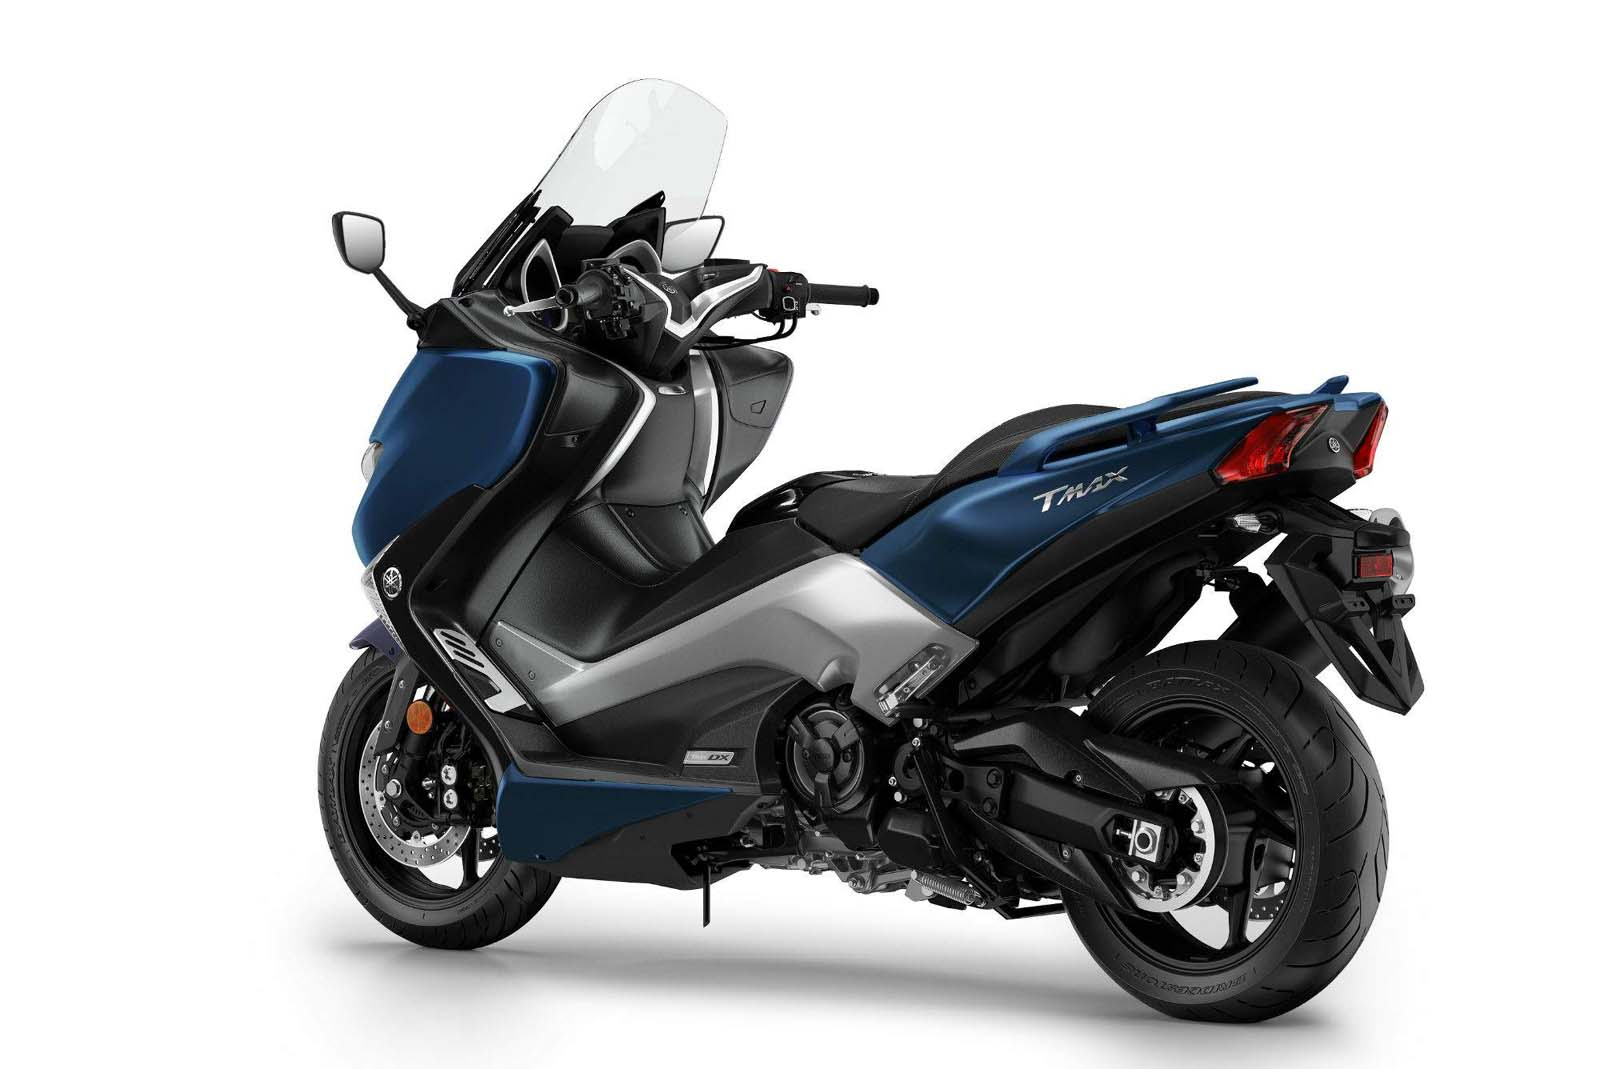 Yamaha TMAX 530DX For Sale Specifications, Price and Images